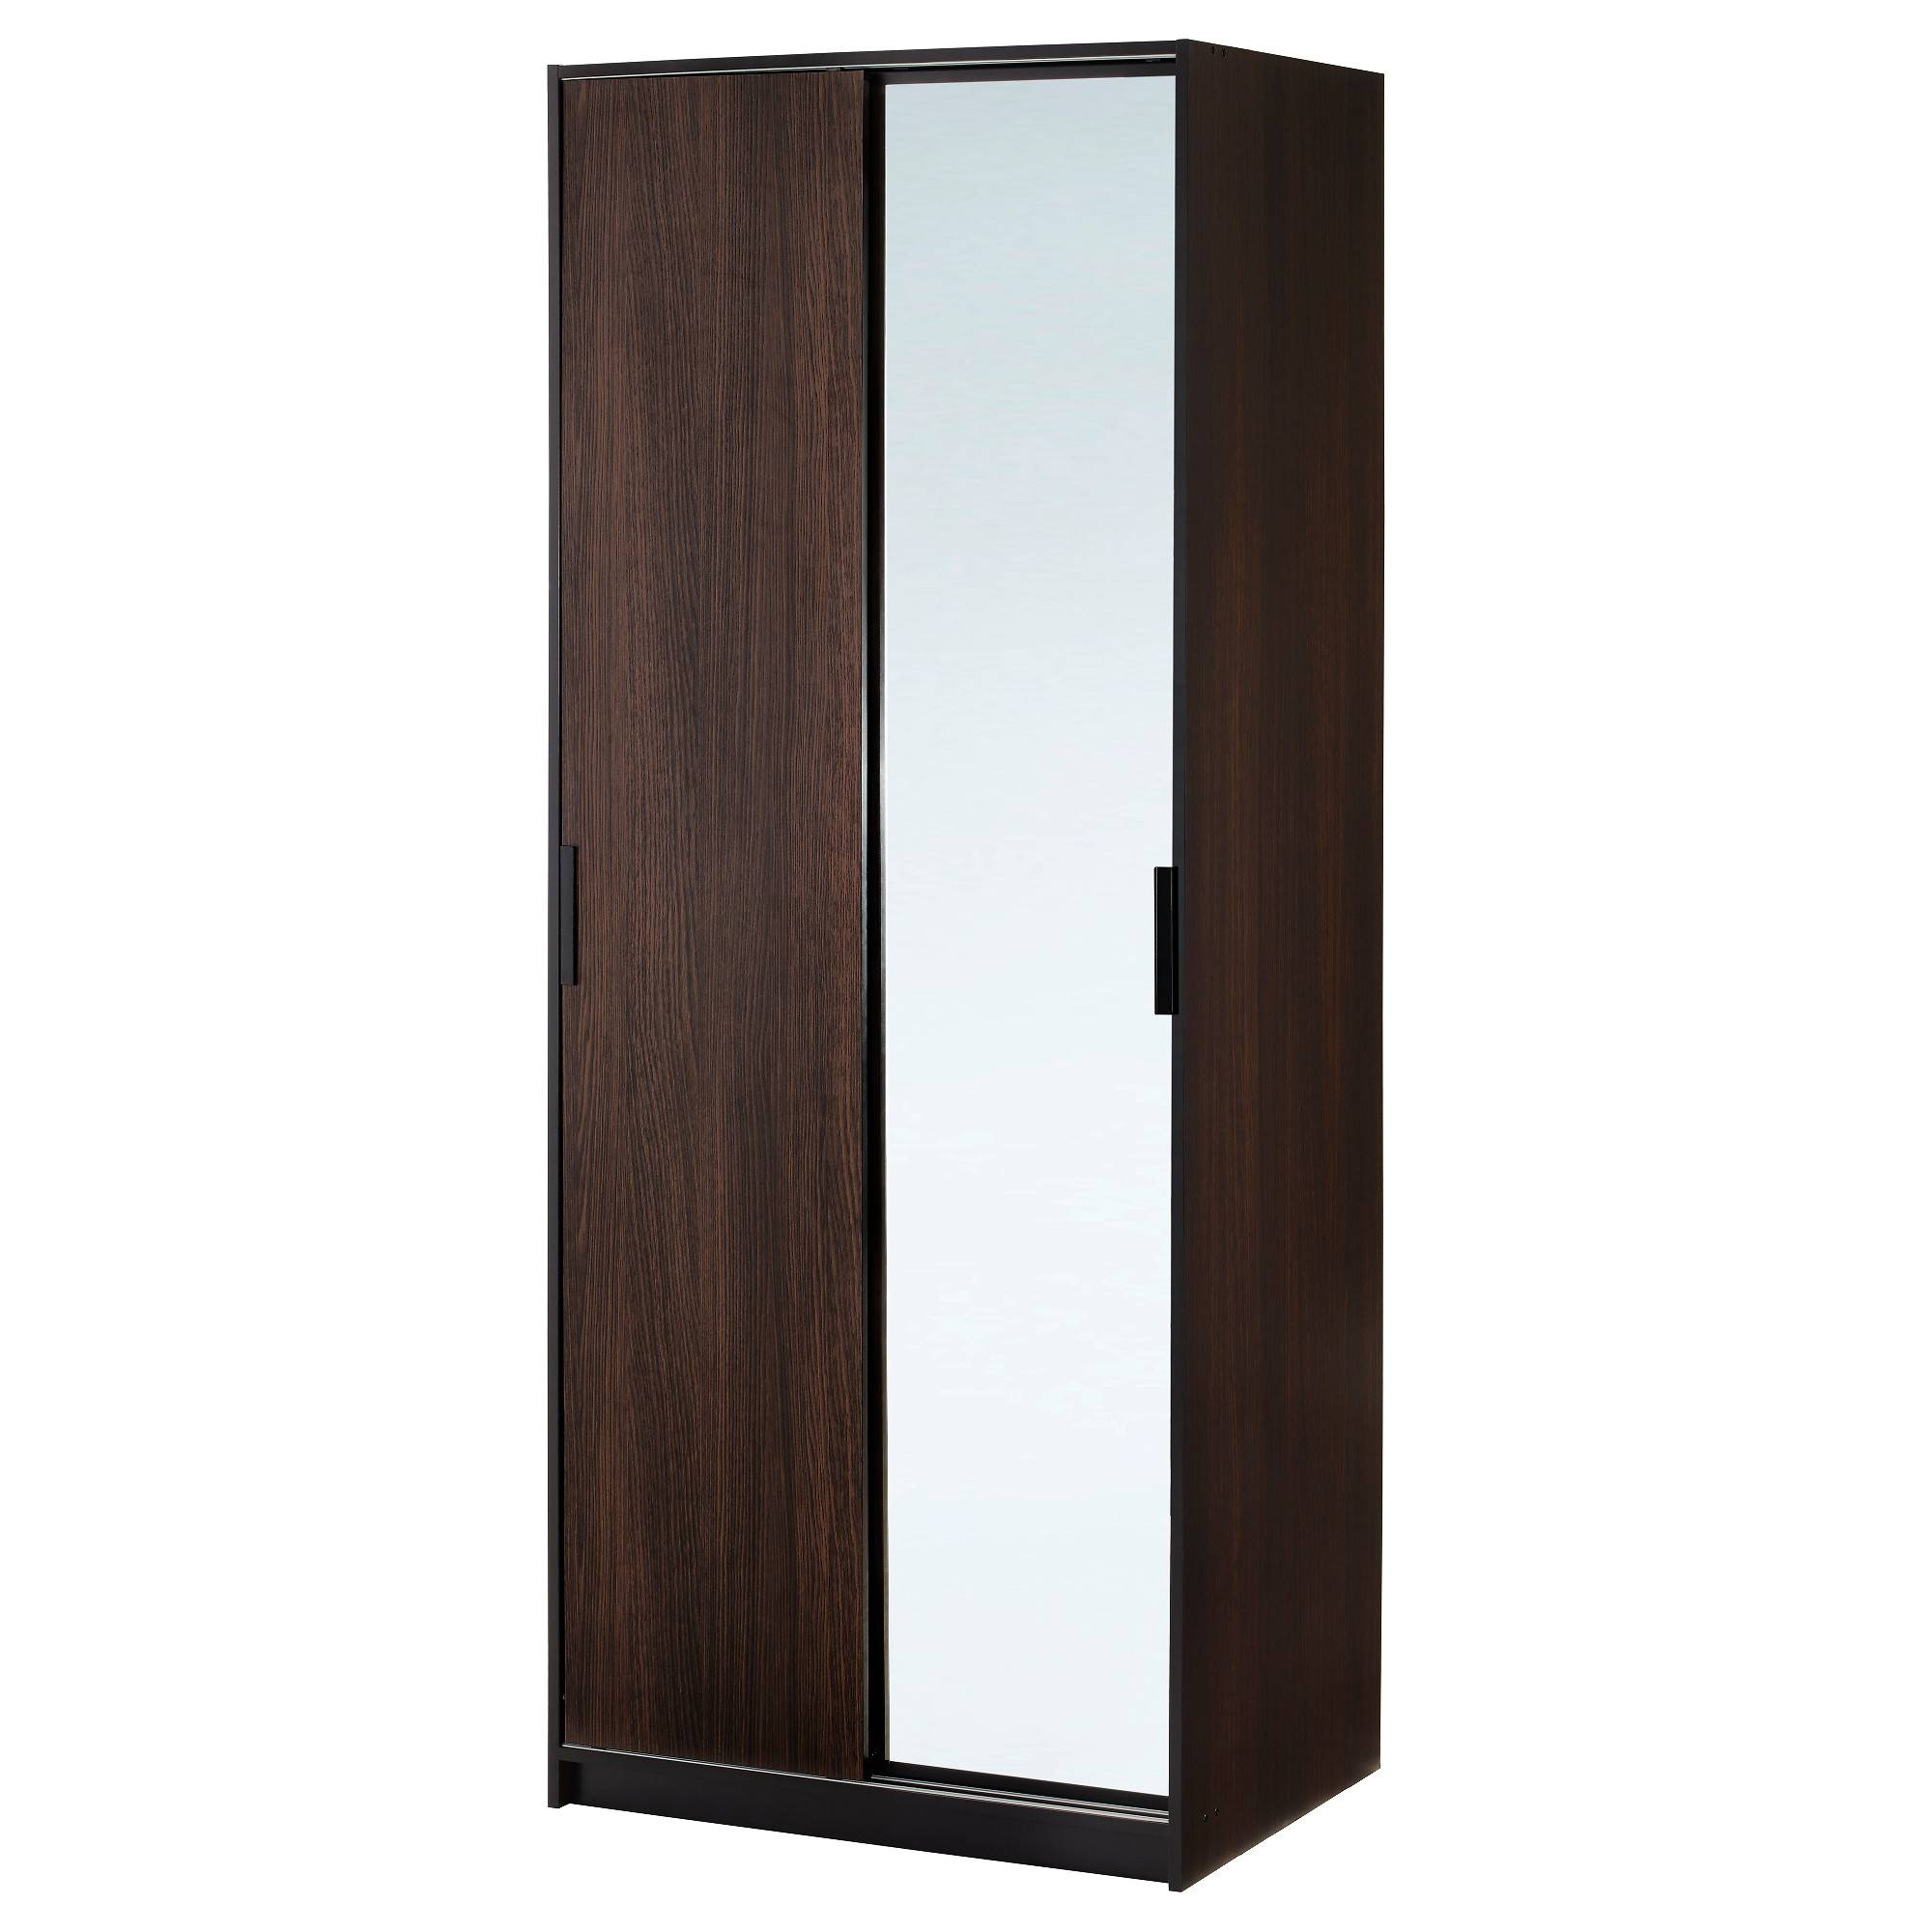 Wardrobes, Armoires & Closets - Ikea within One Door Mirrored Wardrobes (Image 15 of 15)